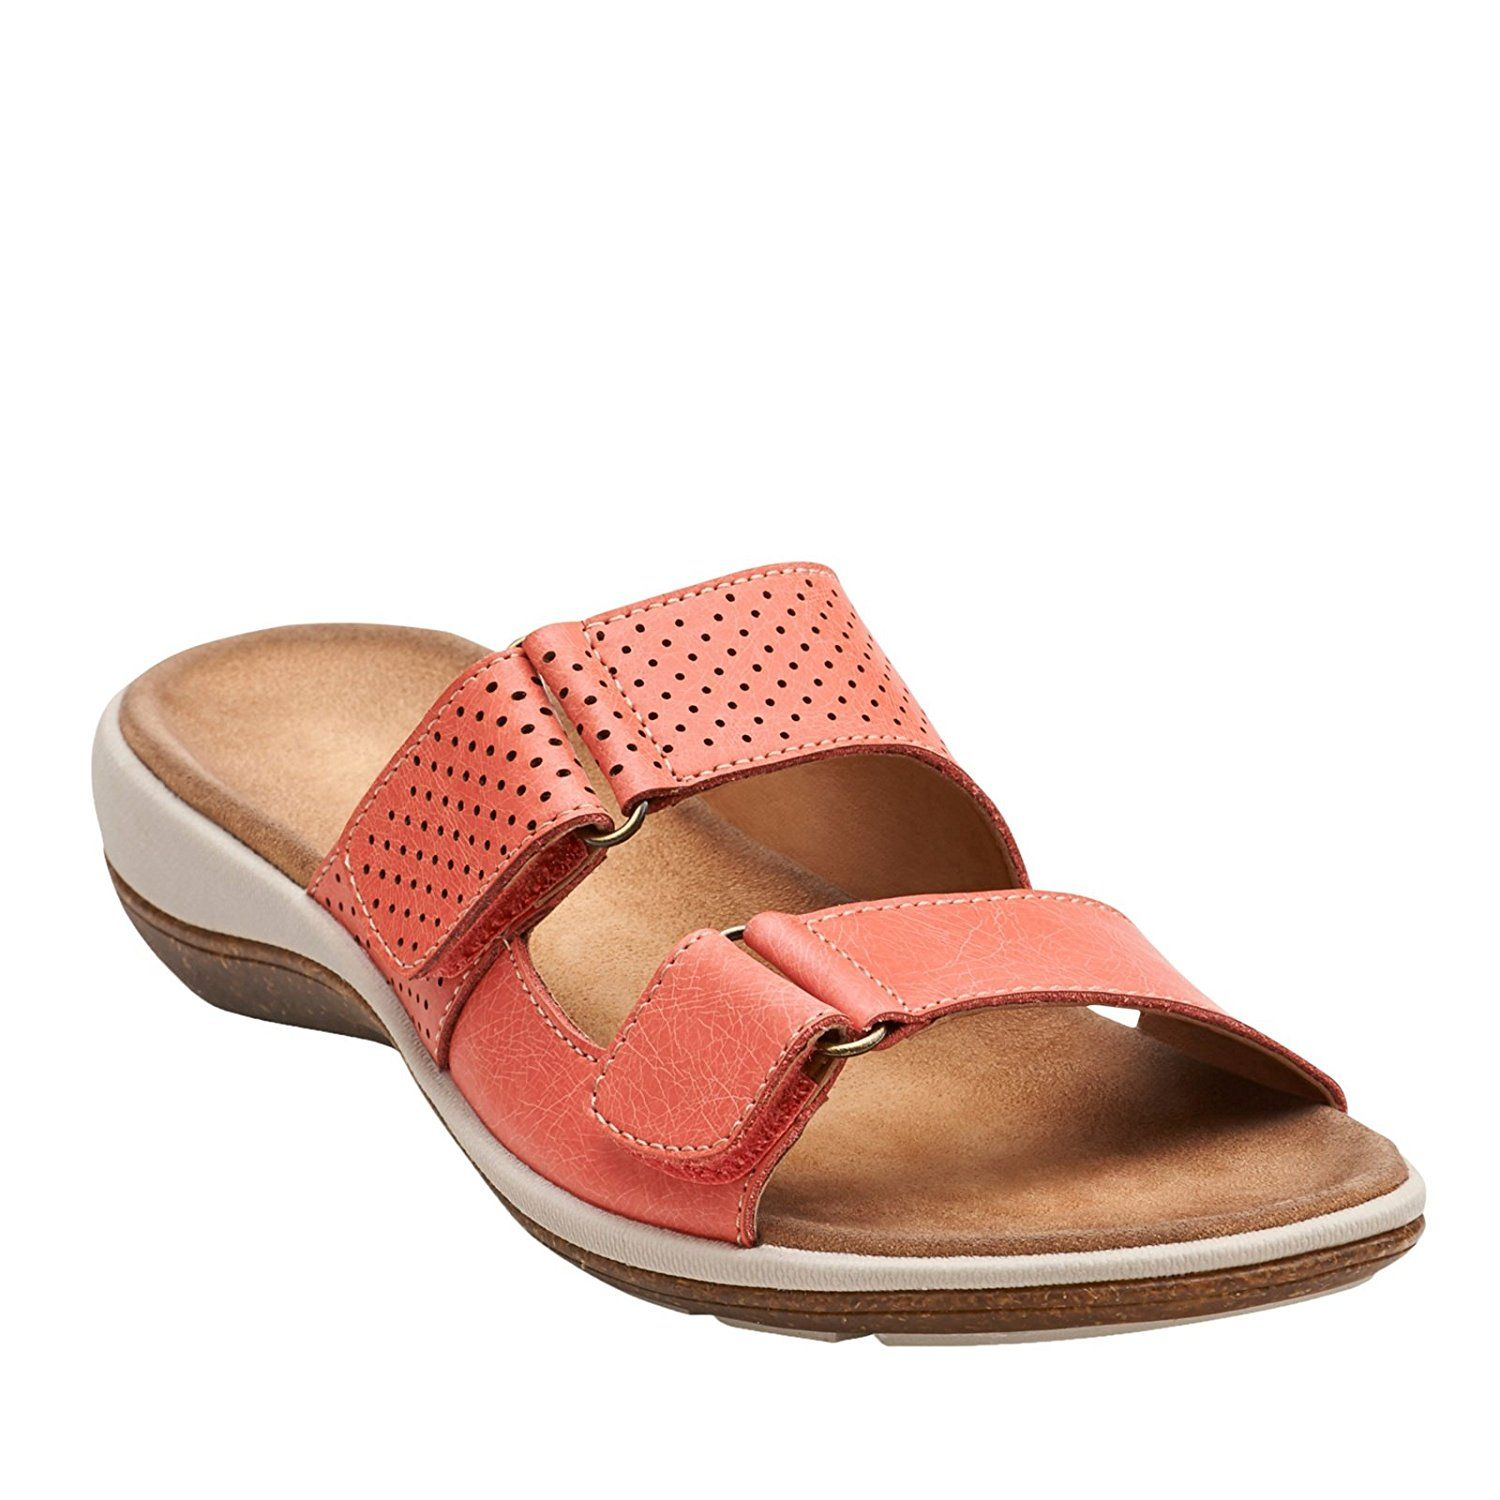 57eeee734e42 Clarks Women s Taline Trim Casual Slide Sandal     Check out this great  image   Clarks sandals